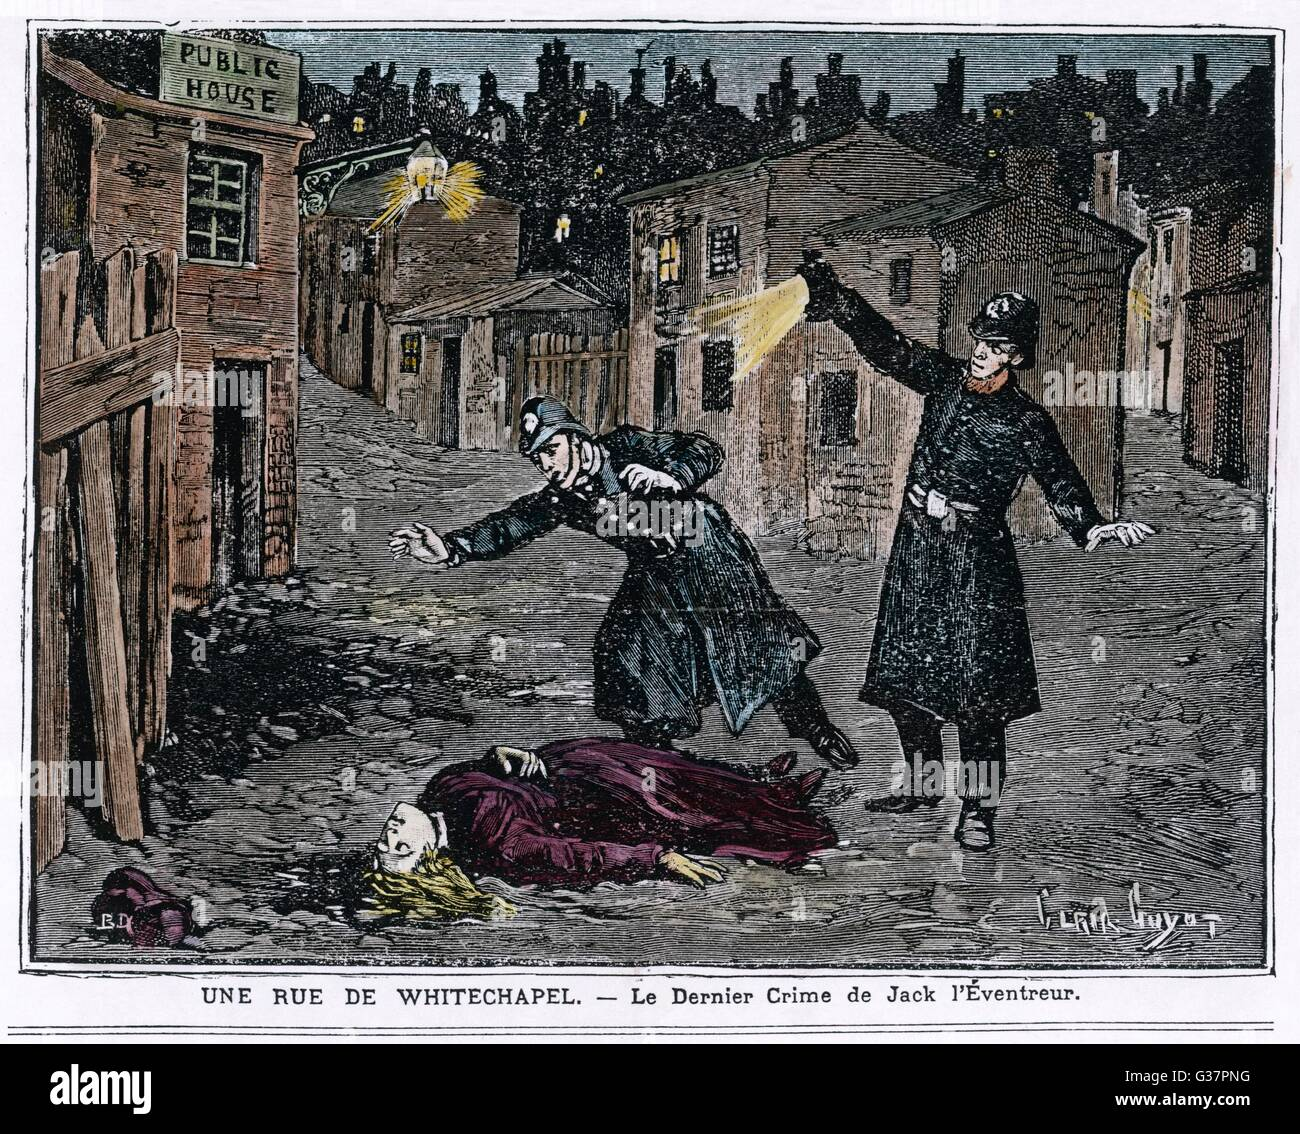 An introduction to the Whitechapel Murders